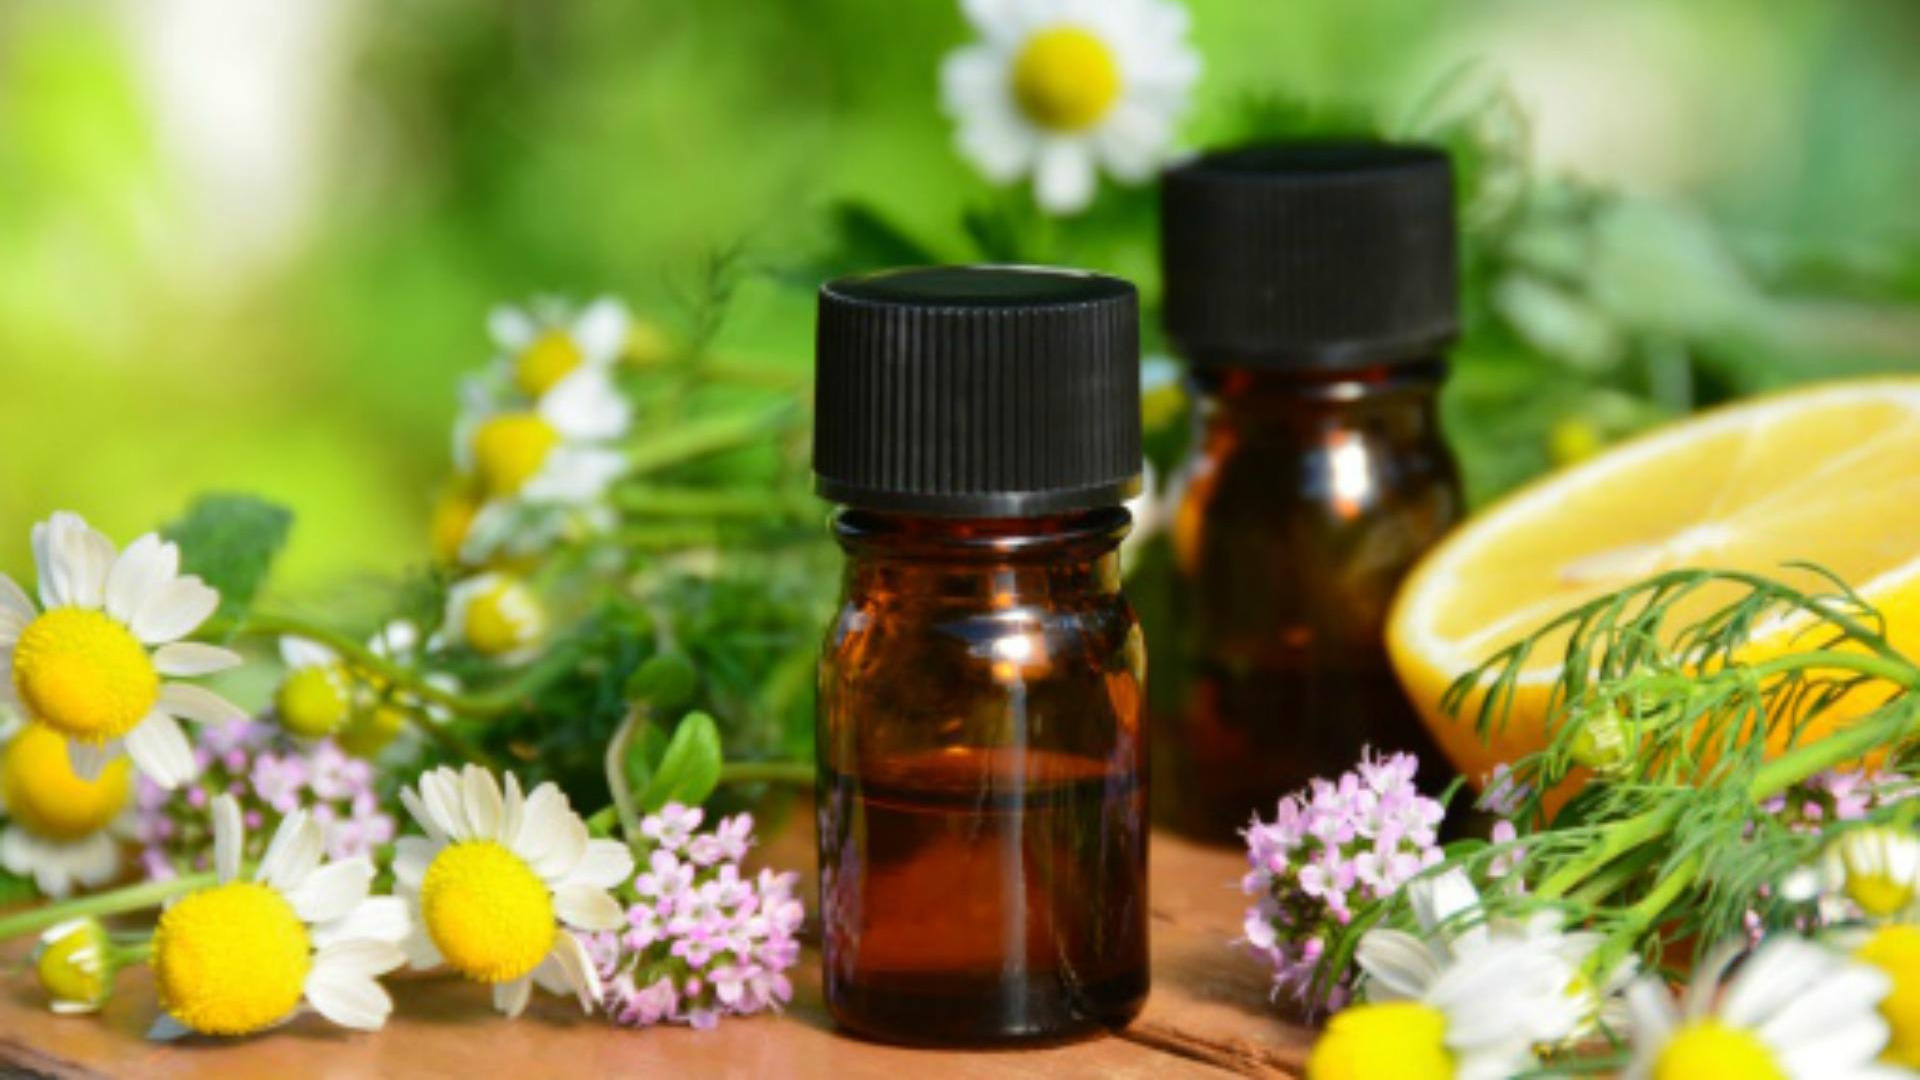 How to Use Essential Oils Effectively